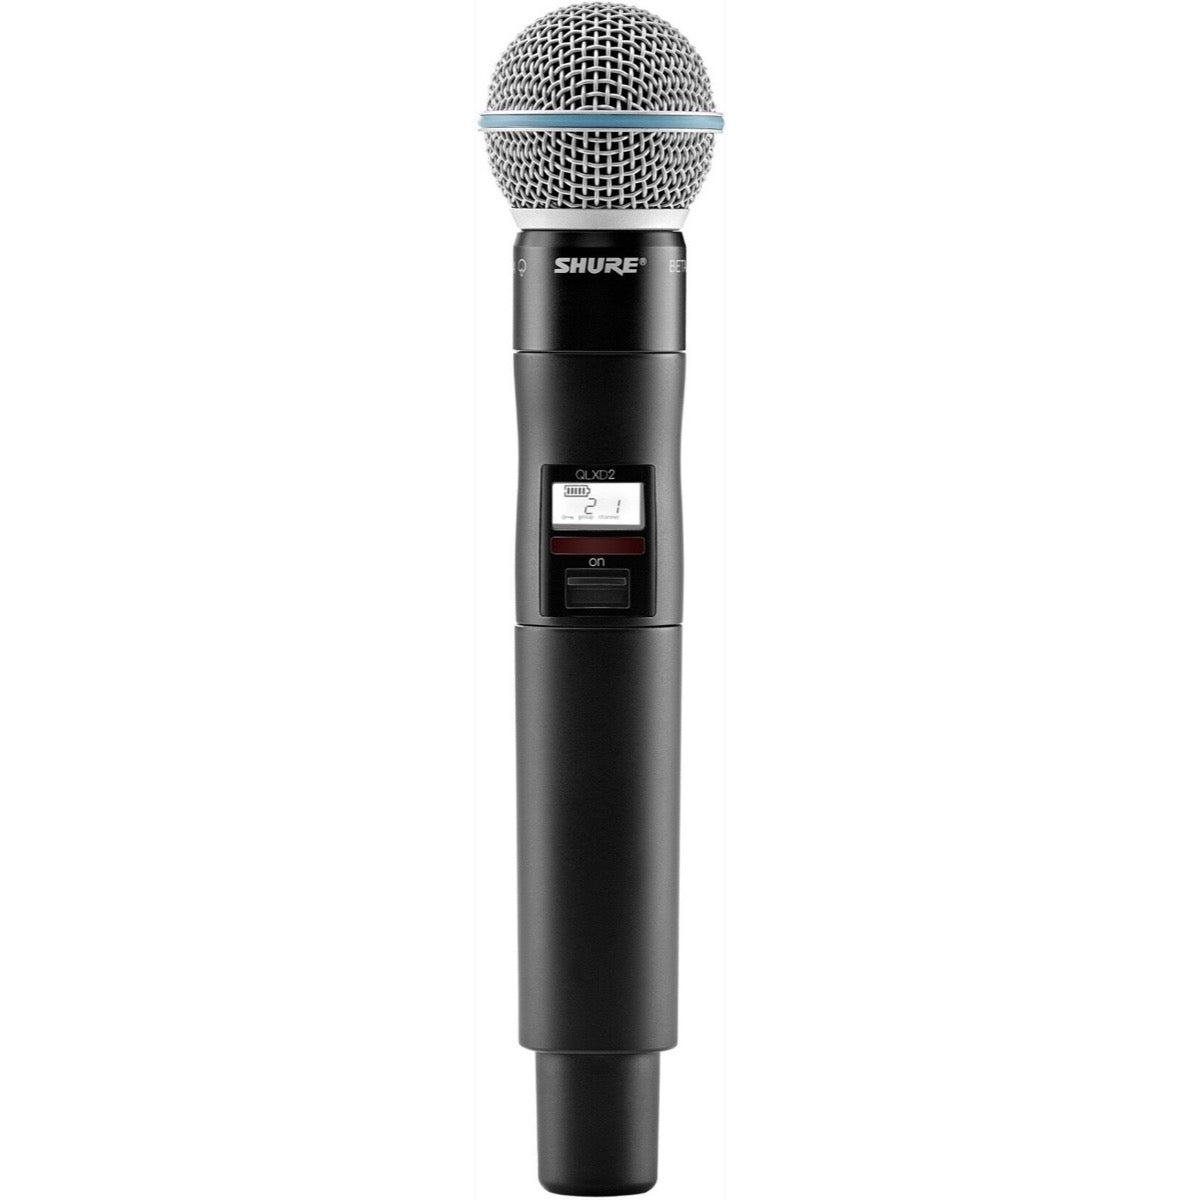 Shure QLXD24B58 Wireless System with Beta 58A Handheld Microphone Transmitter, Band J50A (572 - 608 MHz)